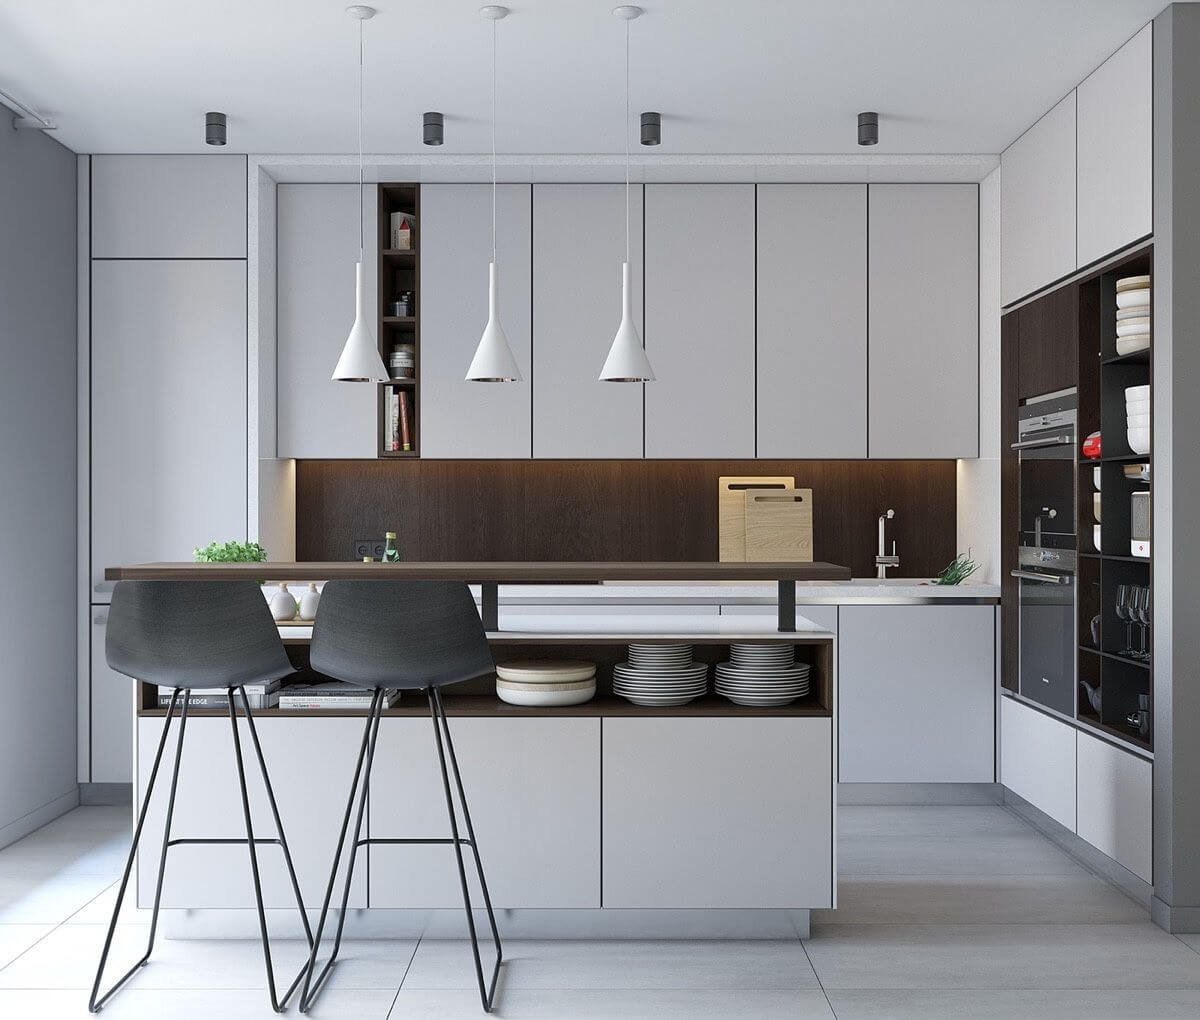 WHAT'S HOT ON PINTEREST 5 INSPIRING CONTEMPORARY 3 contemporary lighting WHAT'S HOT ON PINTEREST: 5 INSPIRING CONTEMPORARY LIGHTING! WHAT   S HOT ON PINTEREST 5 INSPIRING CONTEMPORARY 3